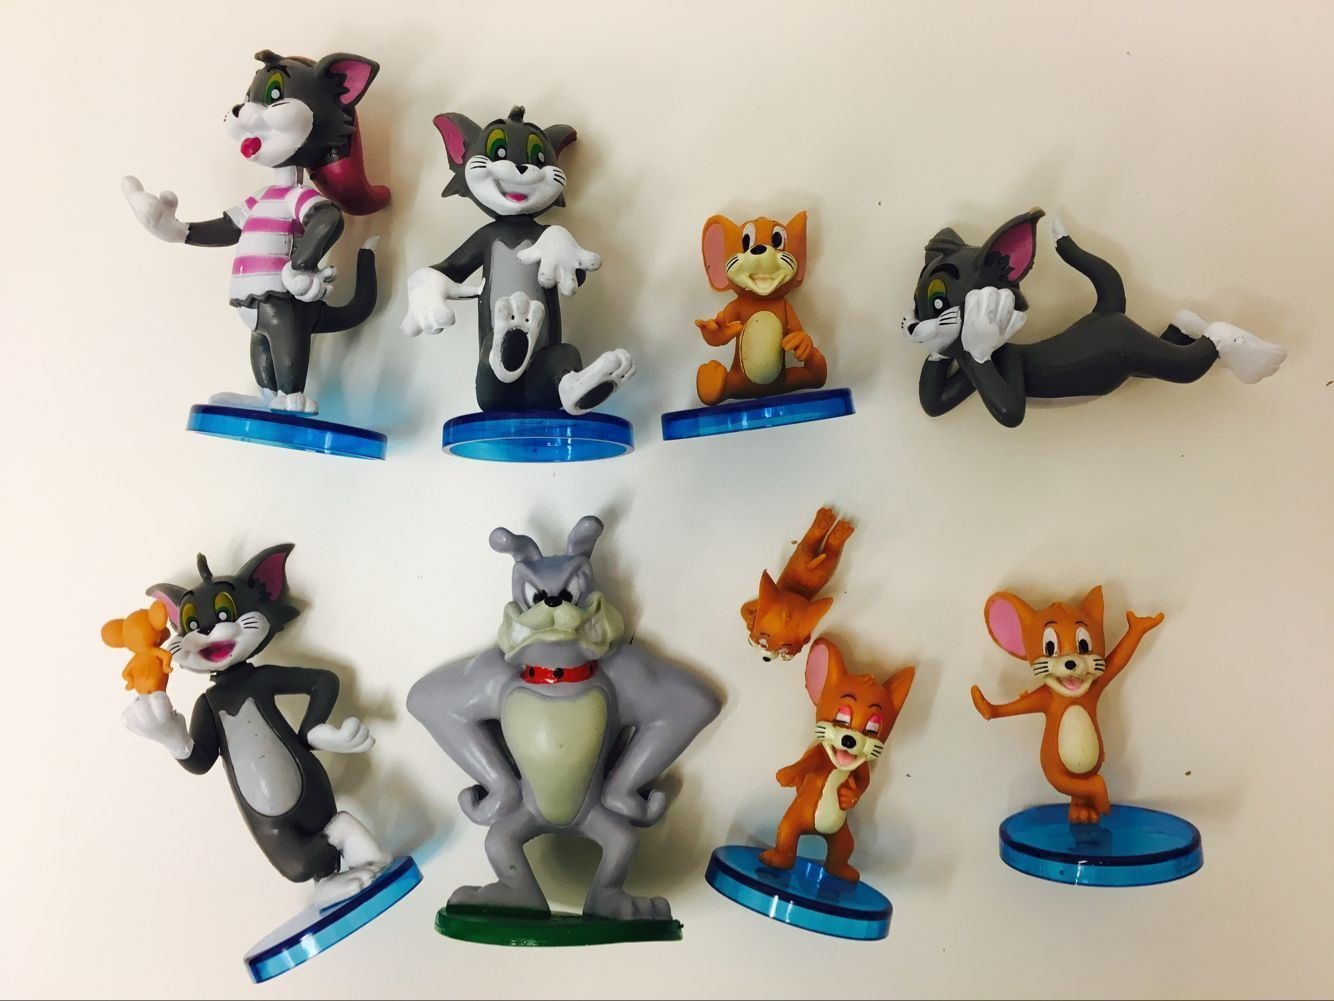 Amazon.com: 9pcs Set Tom y Jerry Mini Figures Cartoon Kids ...